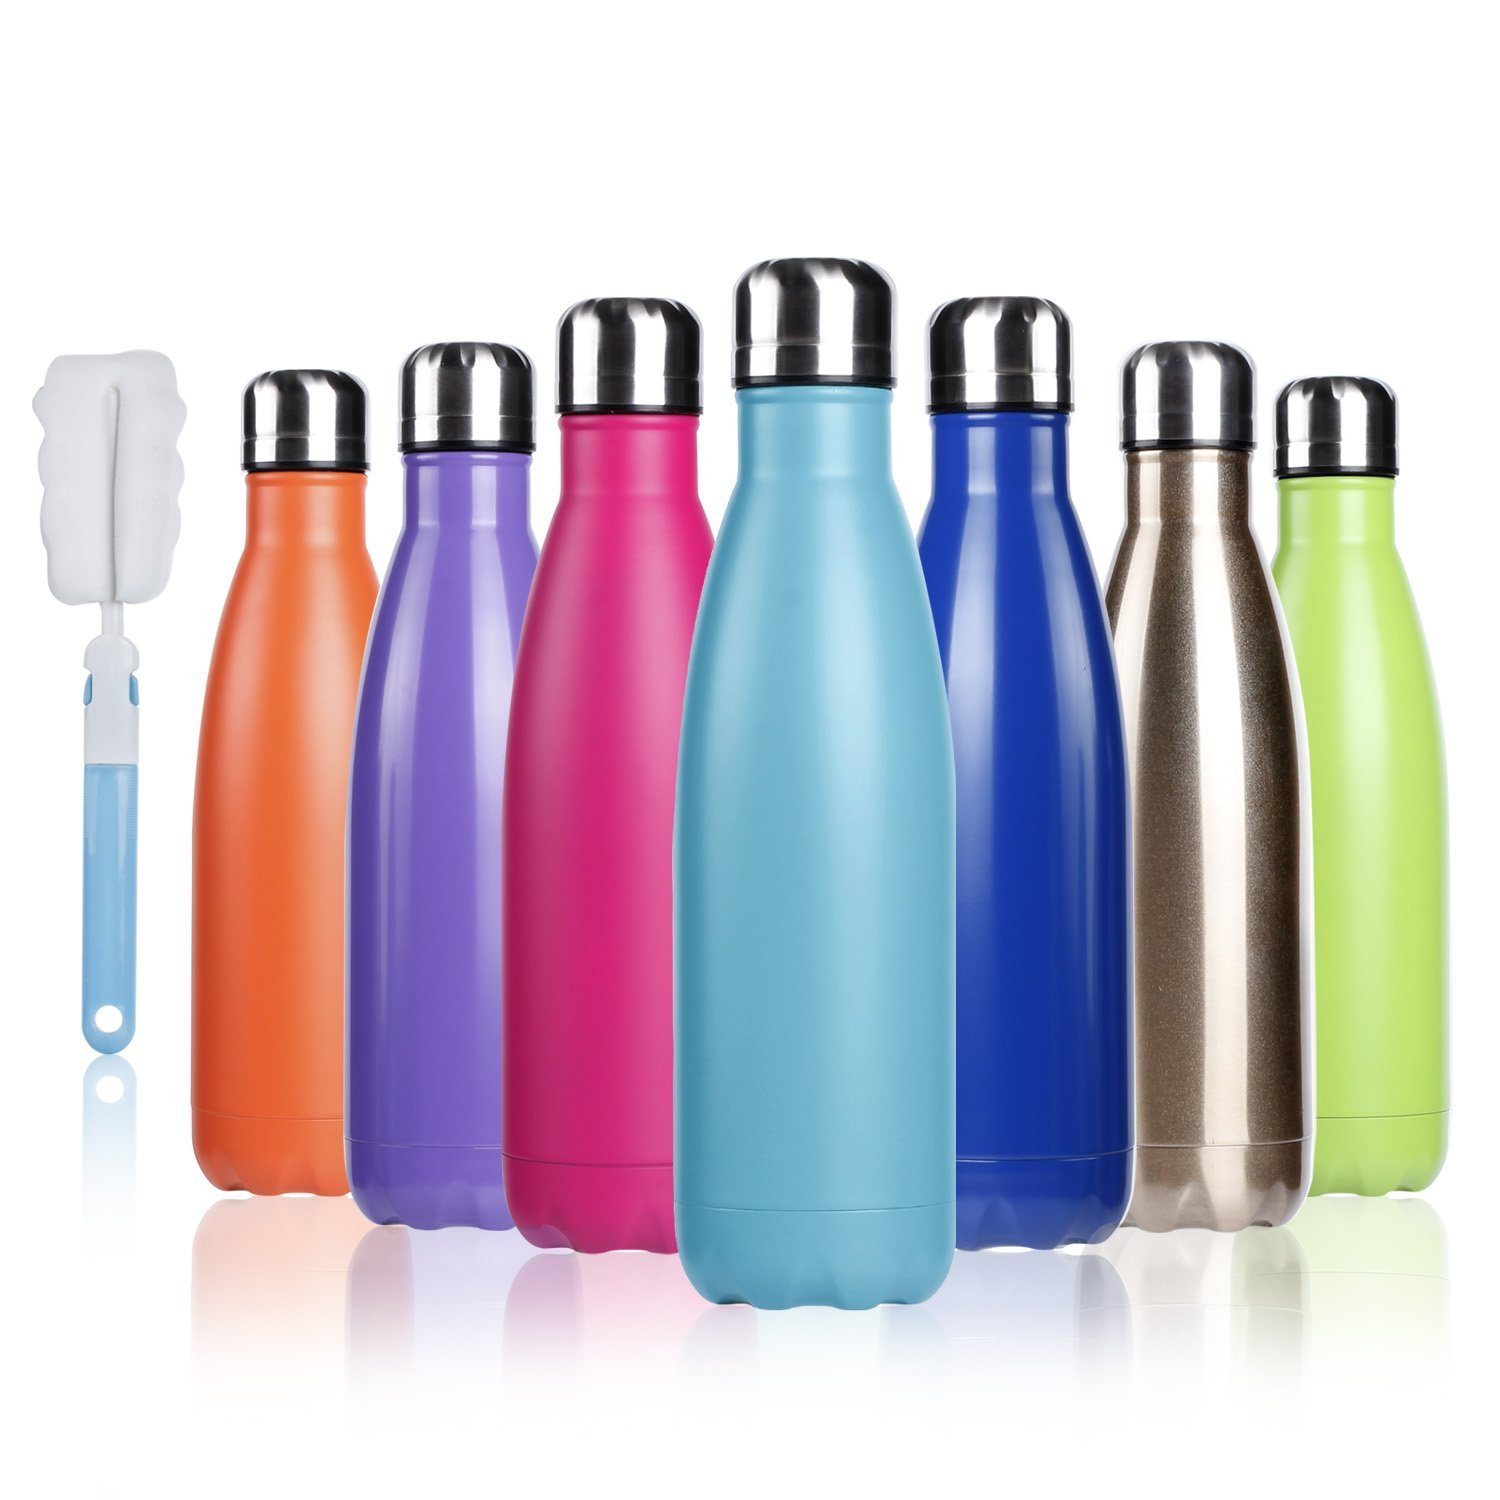 BOGI 17oz Insulated Water Bottle Double Wall Vacuum Stainless Steel Bottle Leak Proof Keeps Hot and Cold Drinks for Outdoor Sports Camping Hiking Cycling, Comes with a Cleaning Brush Gift